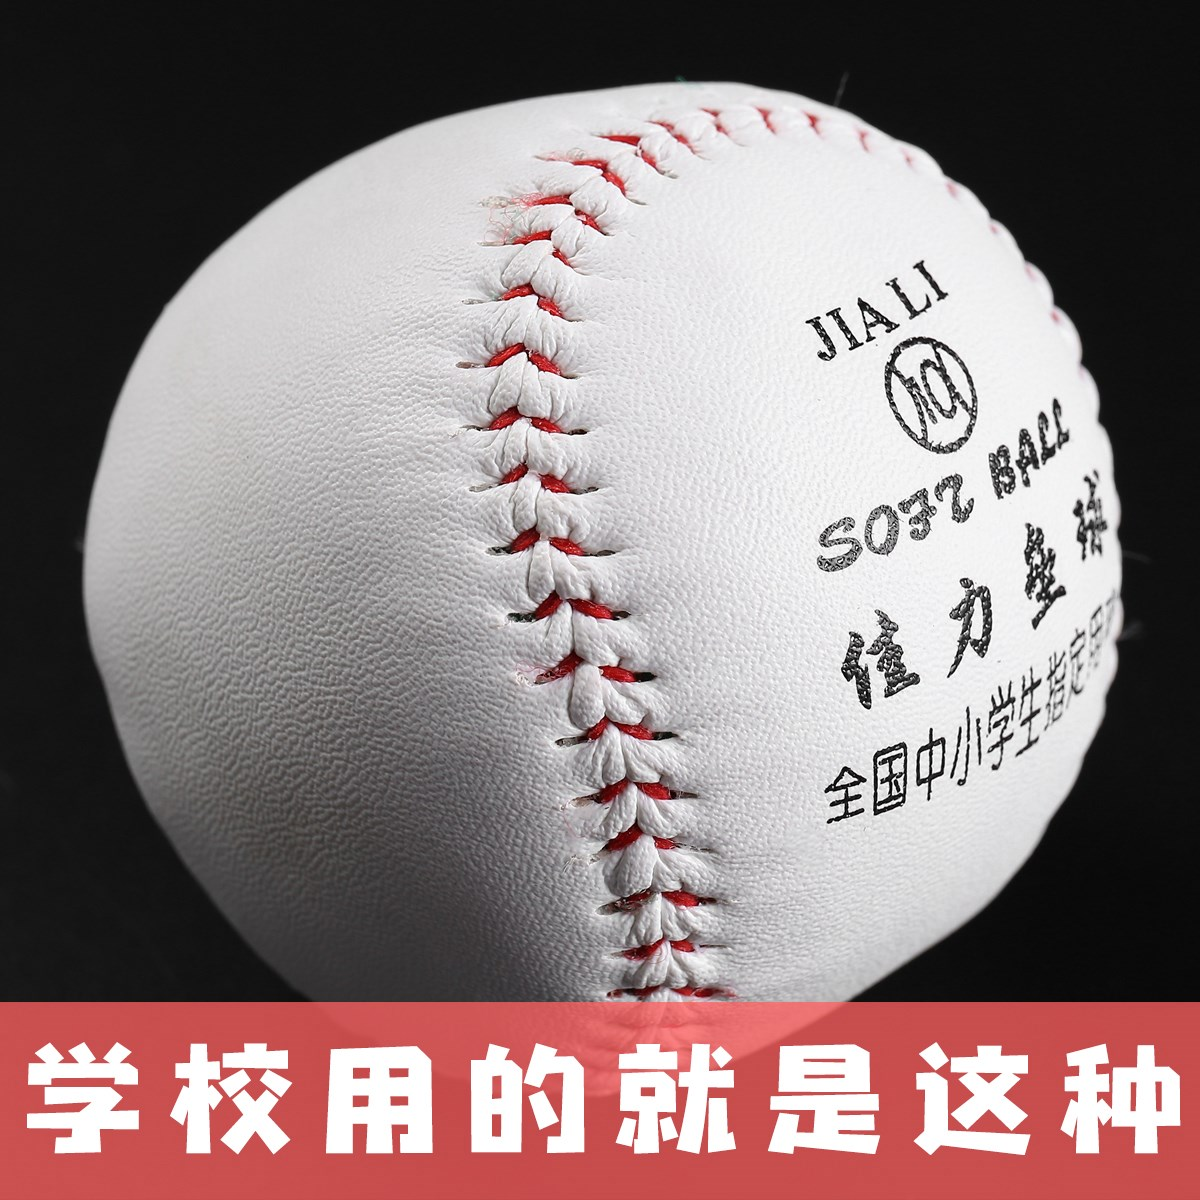 Ten inch primary school sports baseball training special hard solid softball beginners.